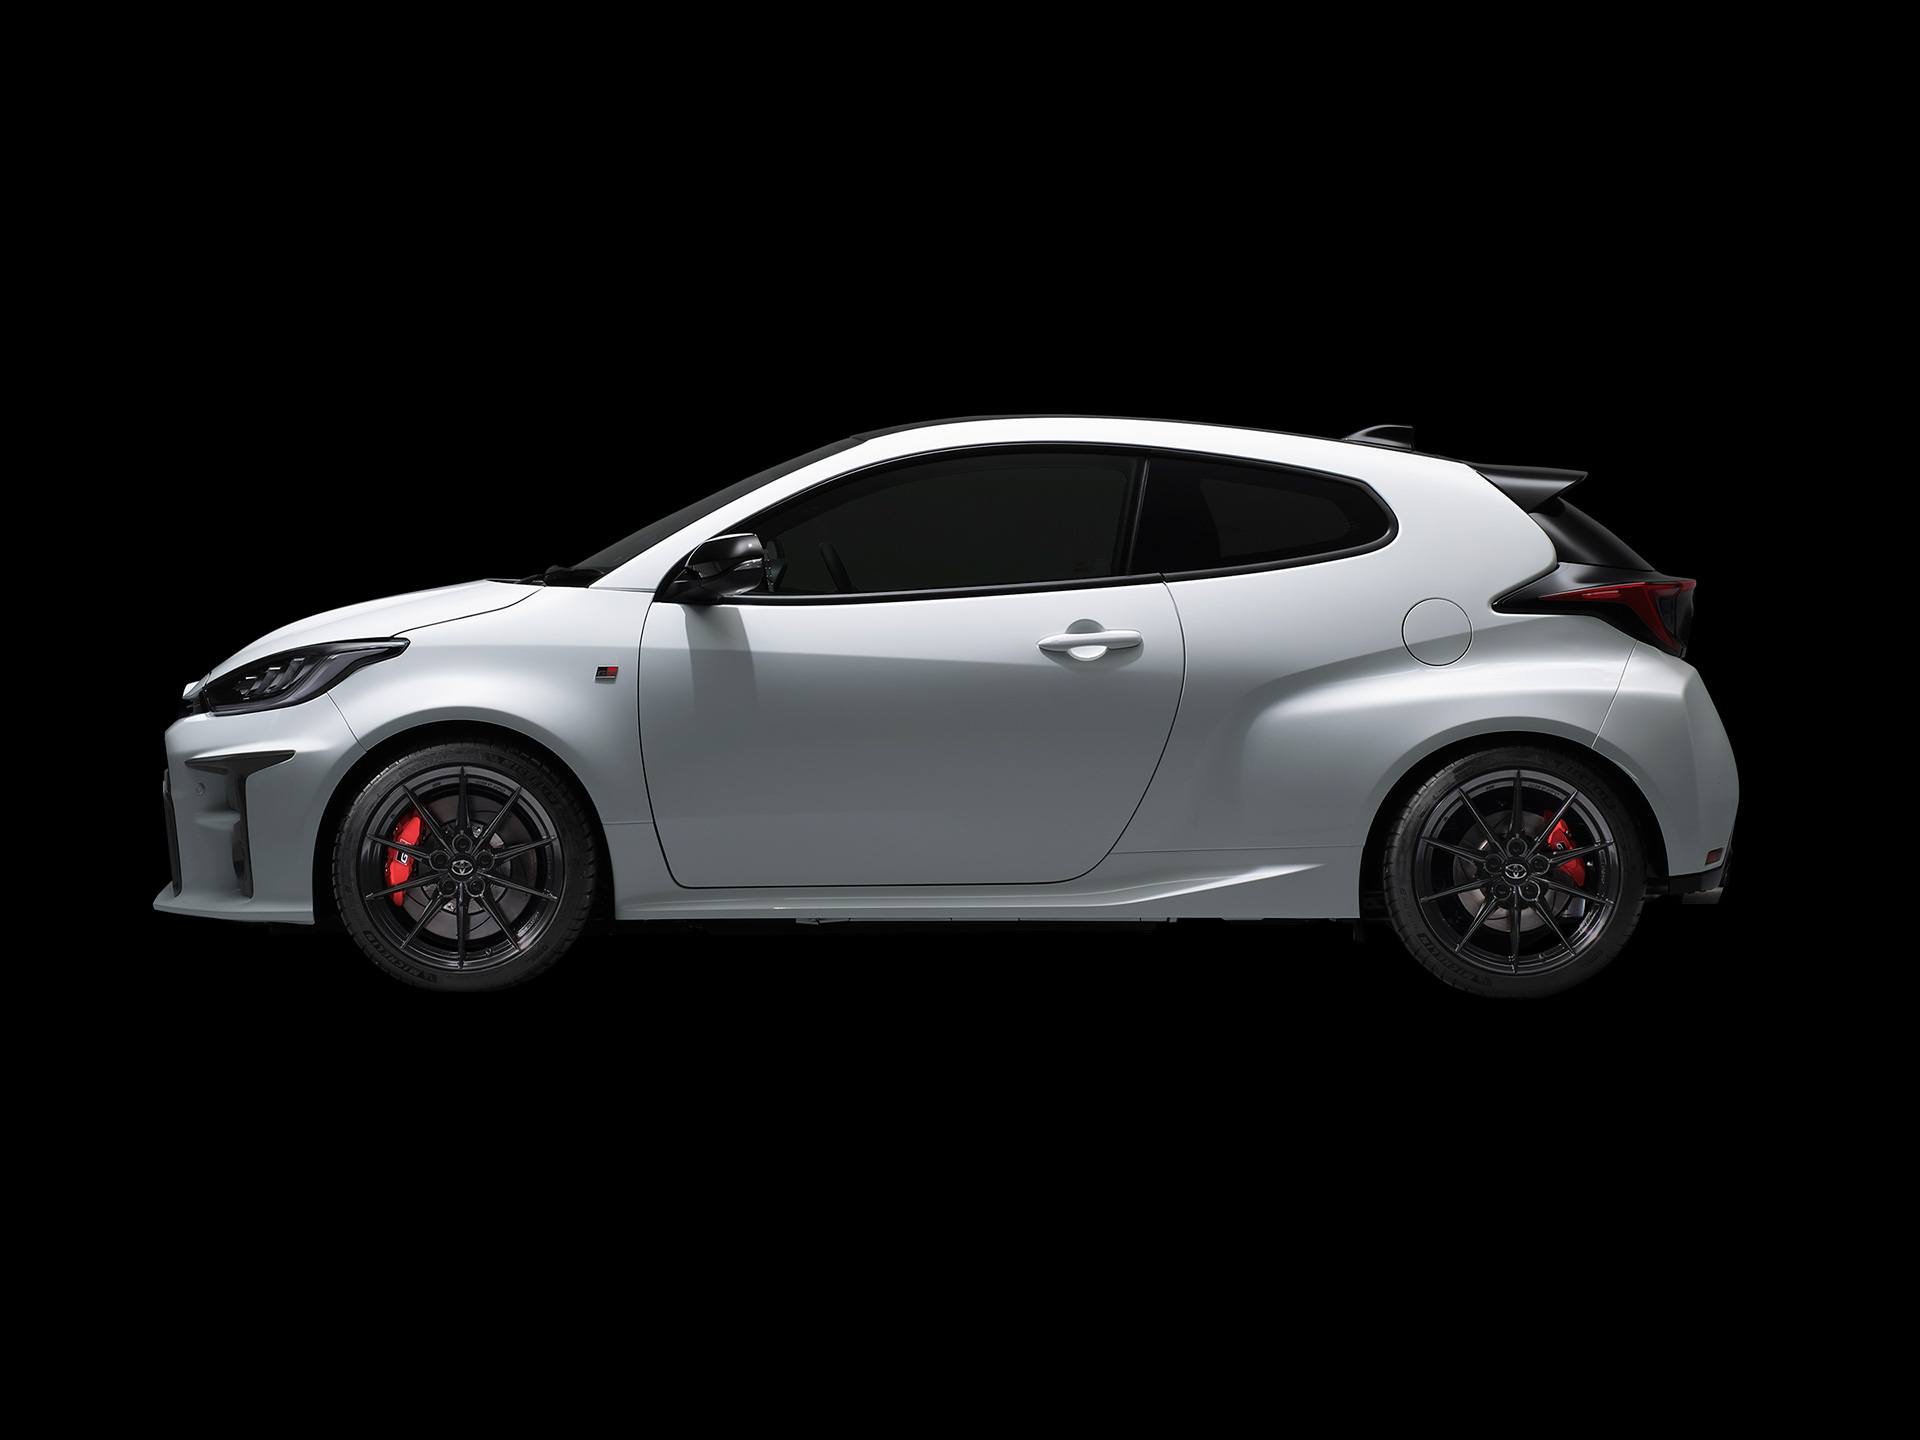 """Toyota Premieres GR YarisToyota Now Accepting Pre-orders for the Special-edition RZ """"First Edition"""" and Special-edition RZ """"High-performance First Edition"""" - Image 6"""